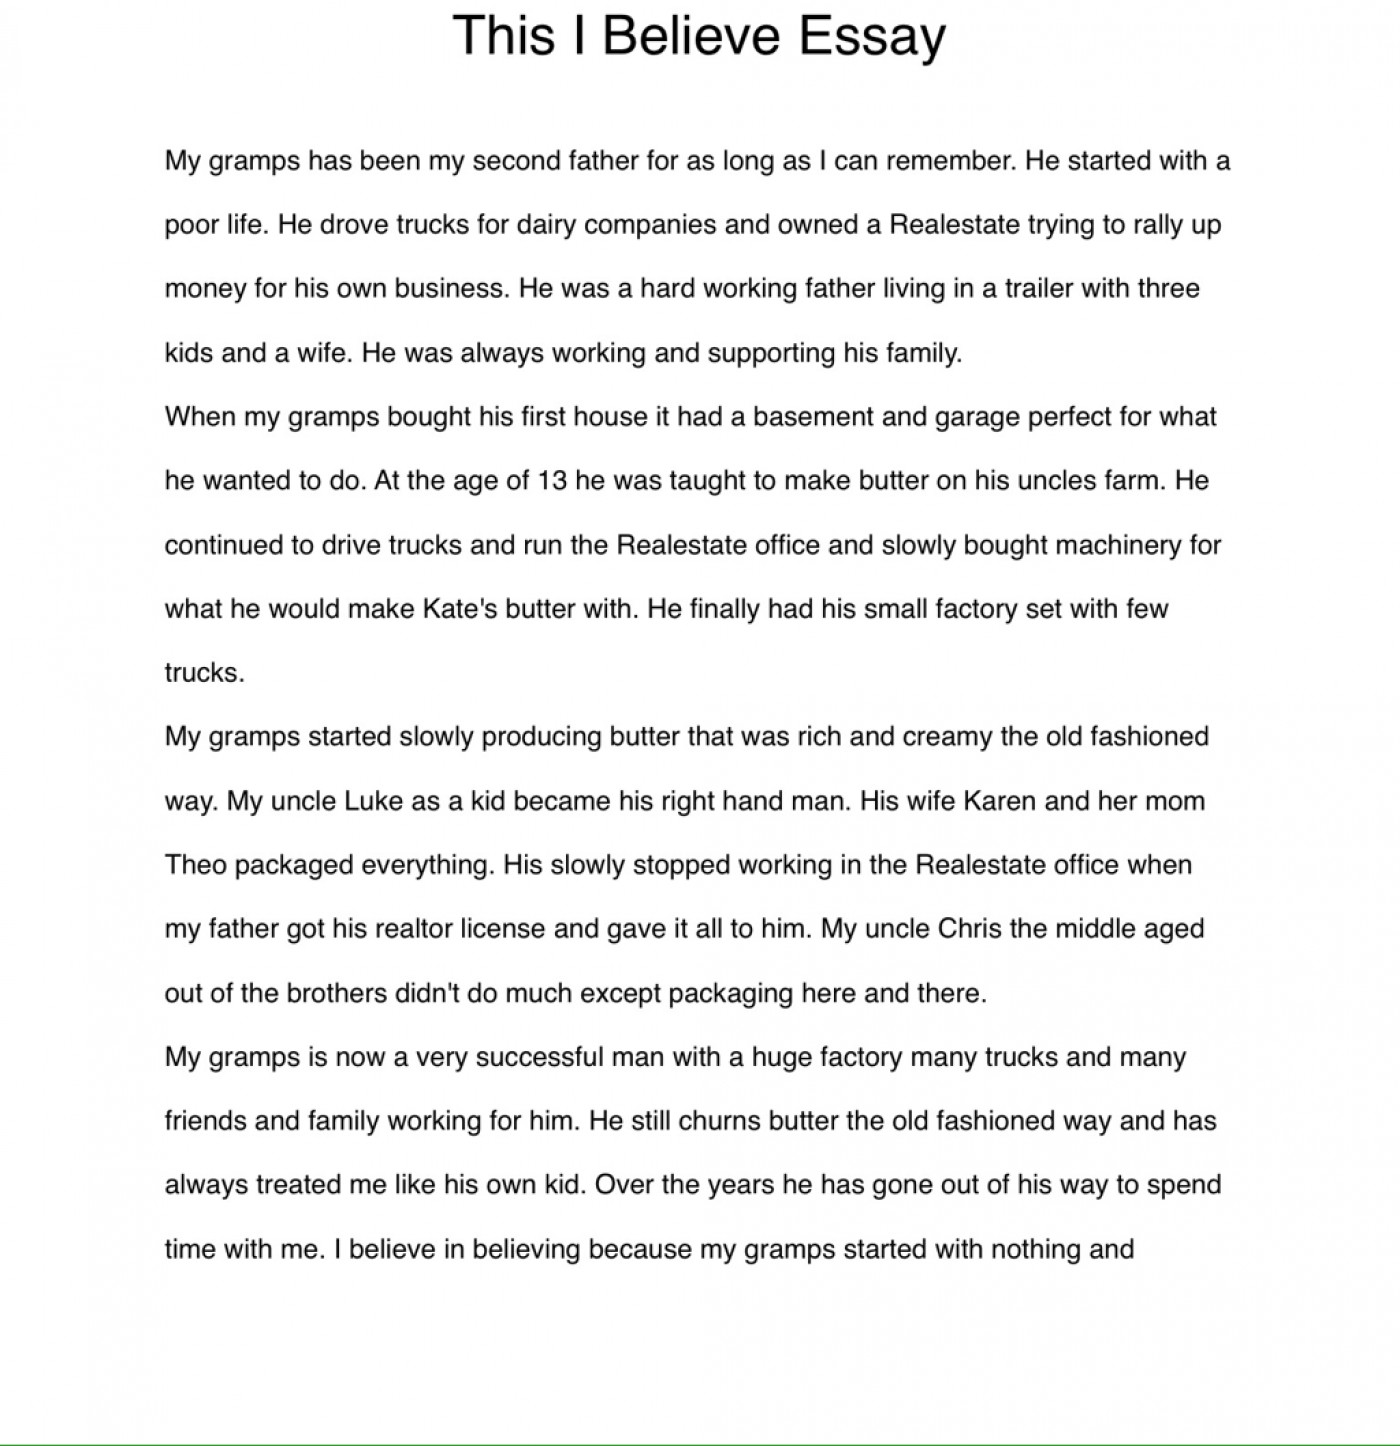 004 This I Believe Essay Topics Example Fearsome Funny Prompt 1400